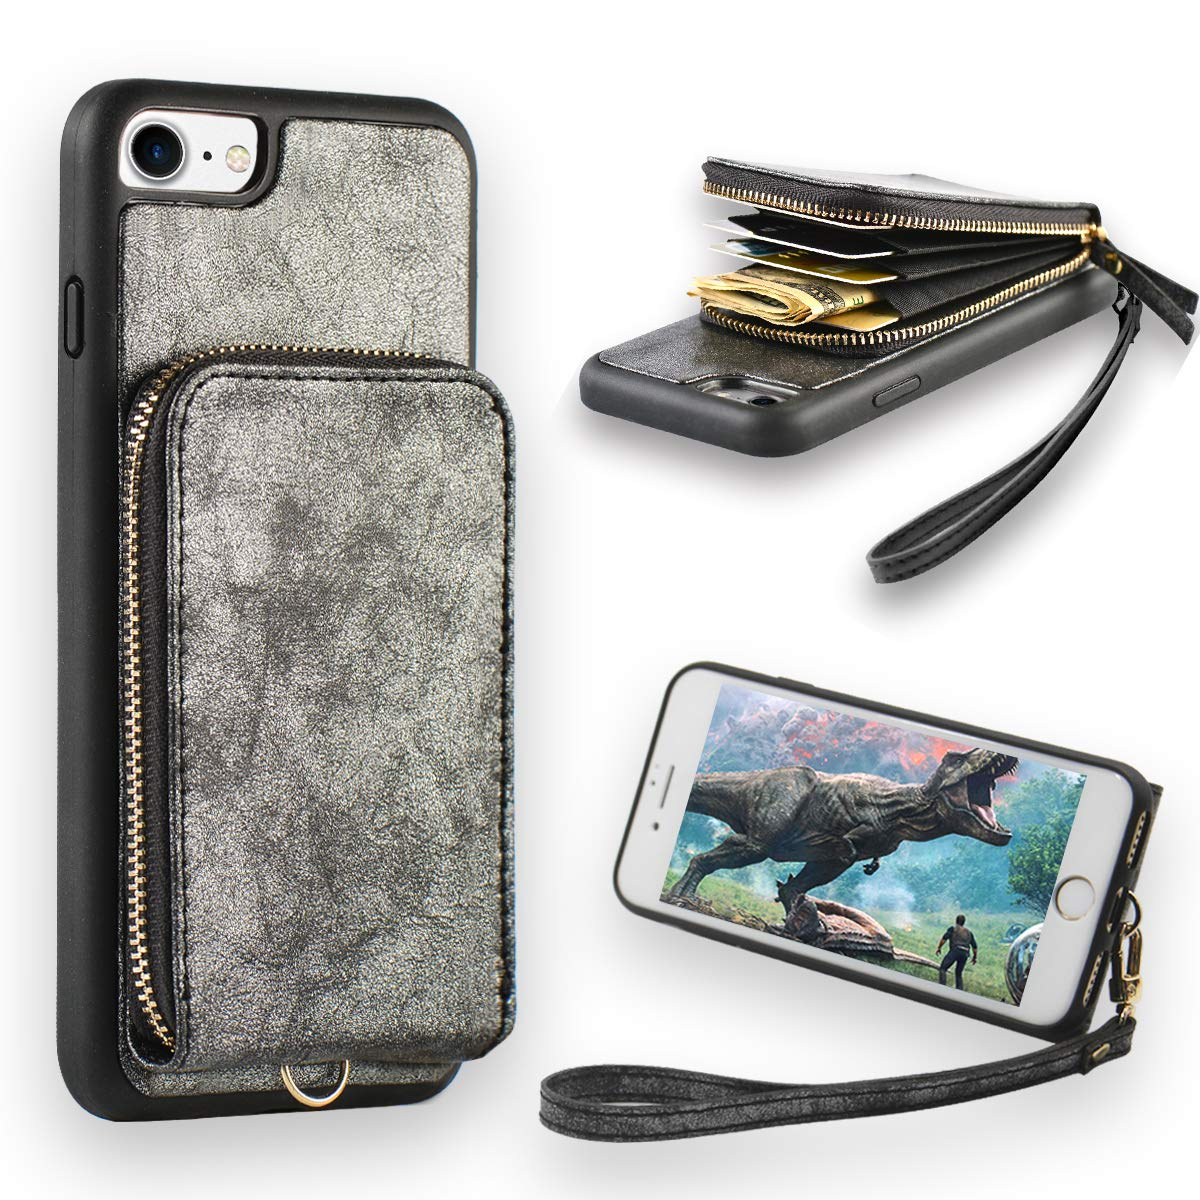 promo code 2a4f1 4b7a2 iPhone 8 Zipper Wallet Case, JLFCH iPhone 7 Wallet Case Leather Purse  Handbag Case with Lanyard Card Holder Wrist Strap Zipper Closure Back  Protective ...